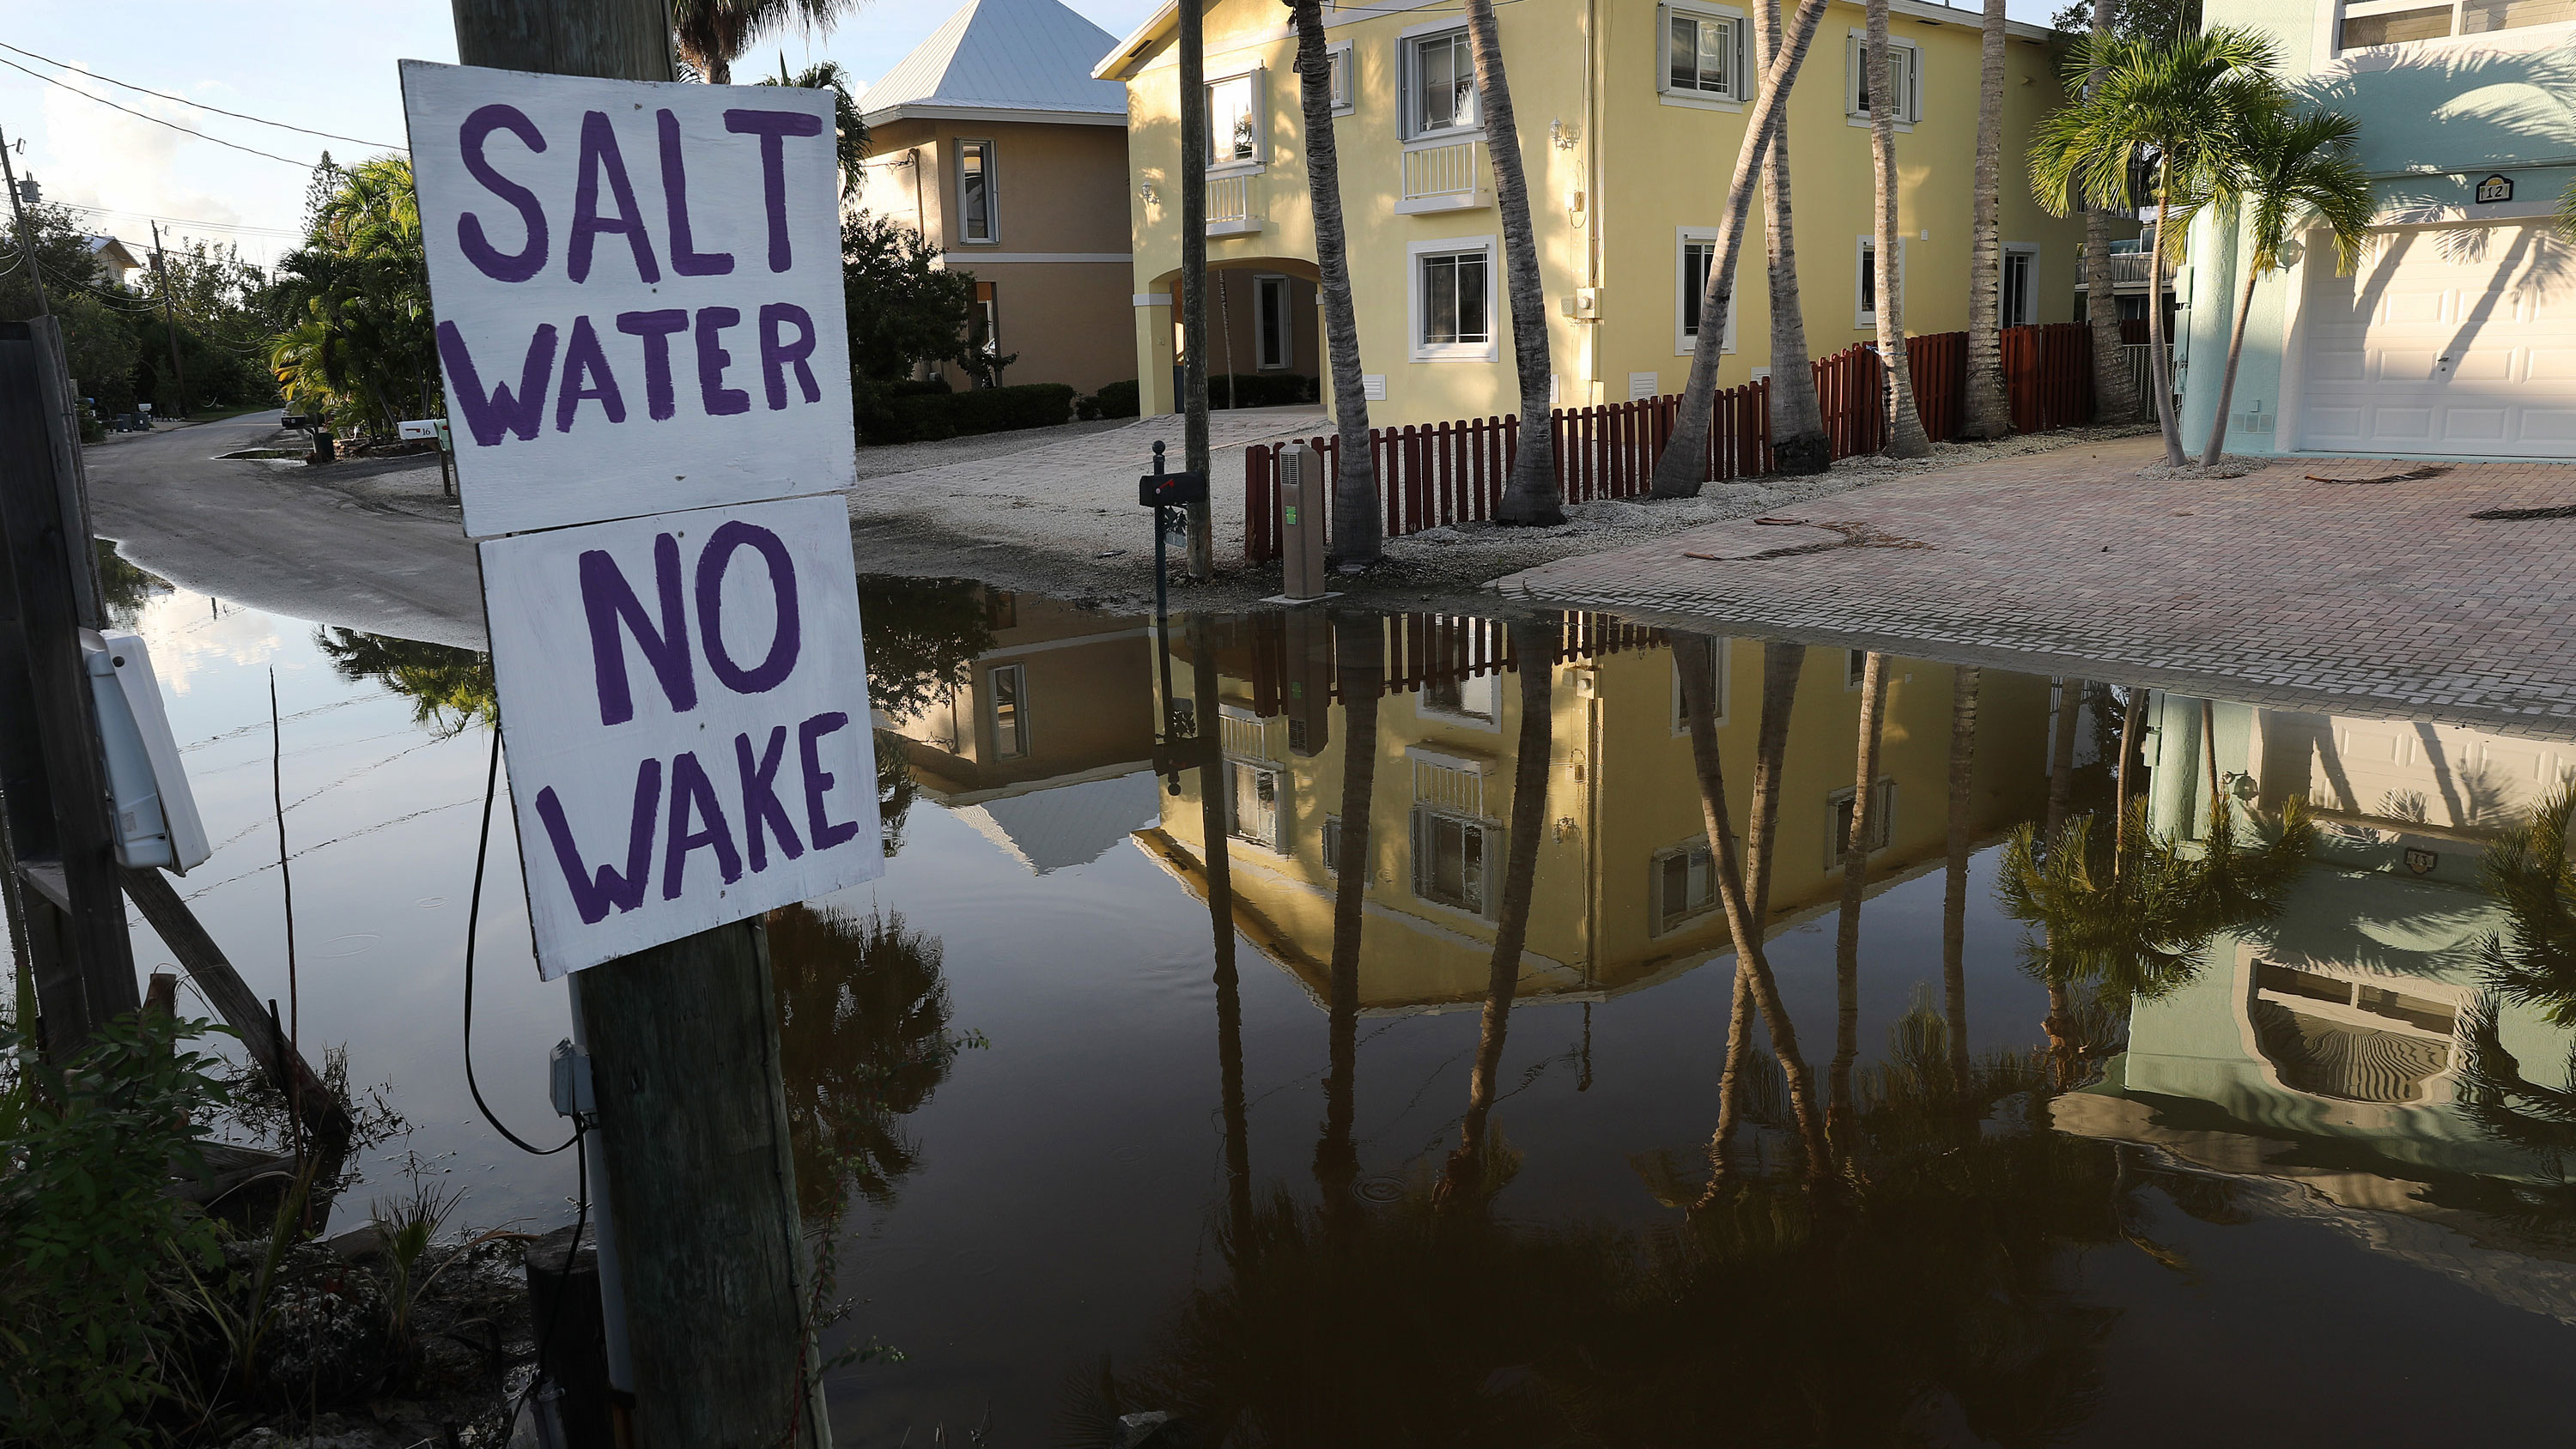 Climate scientists say building collapse is a 'wake-up call' about the potential impact of rising seas